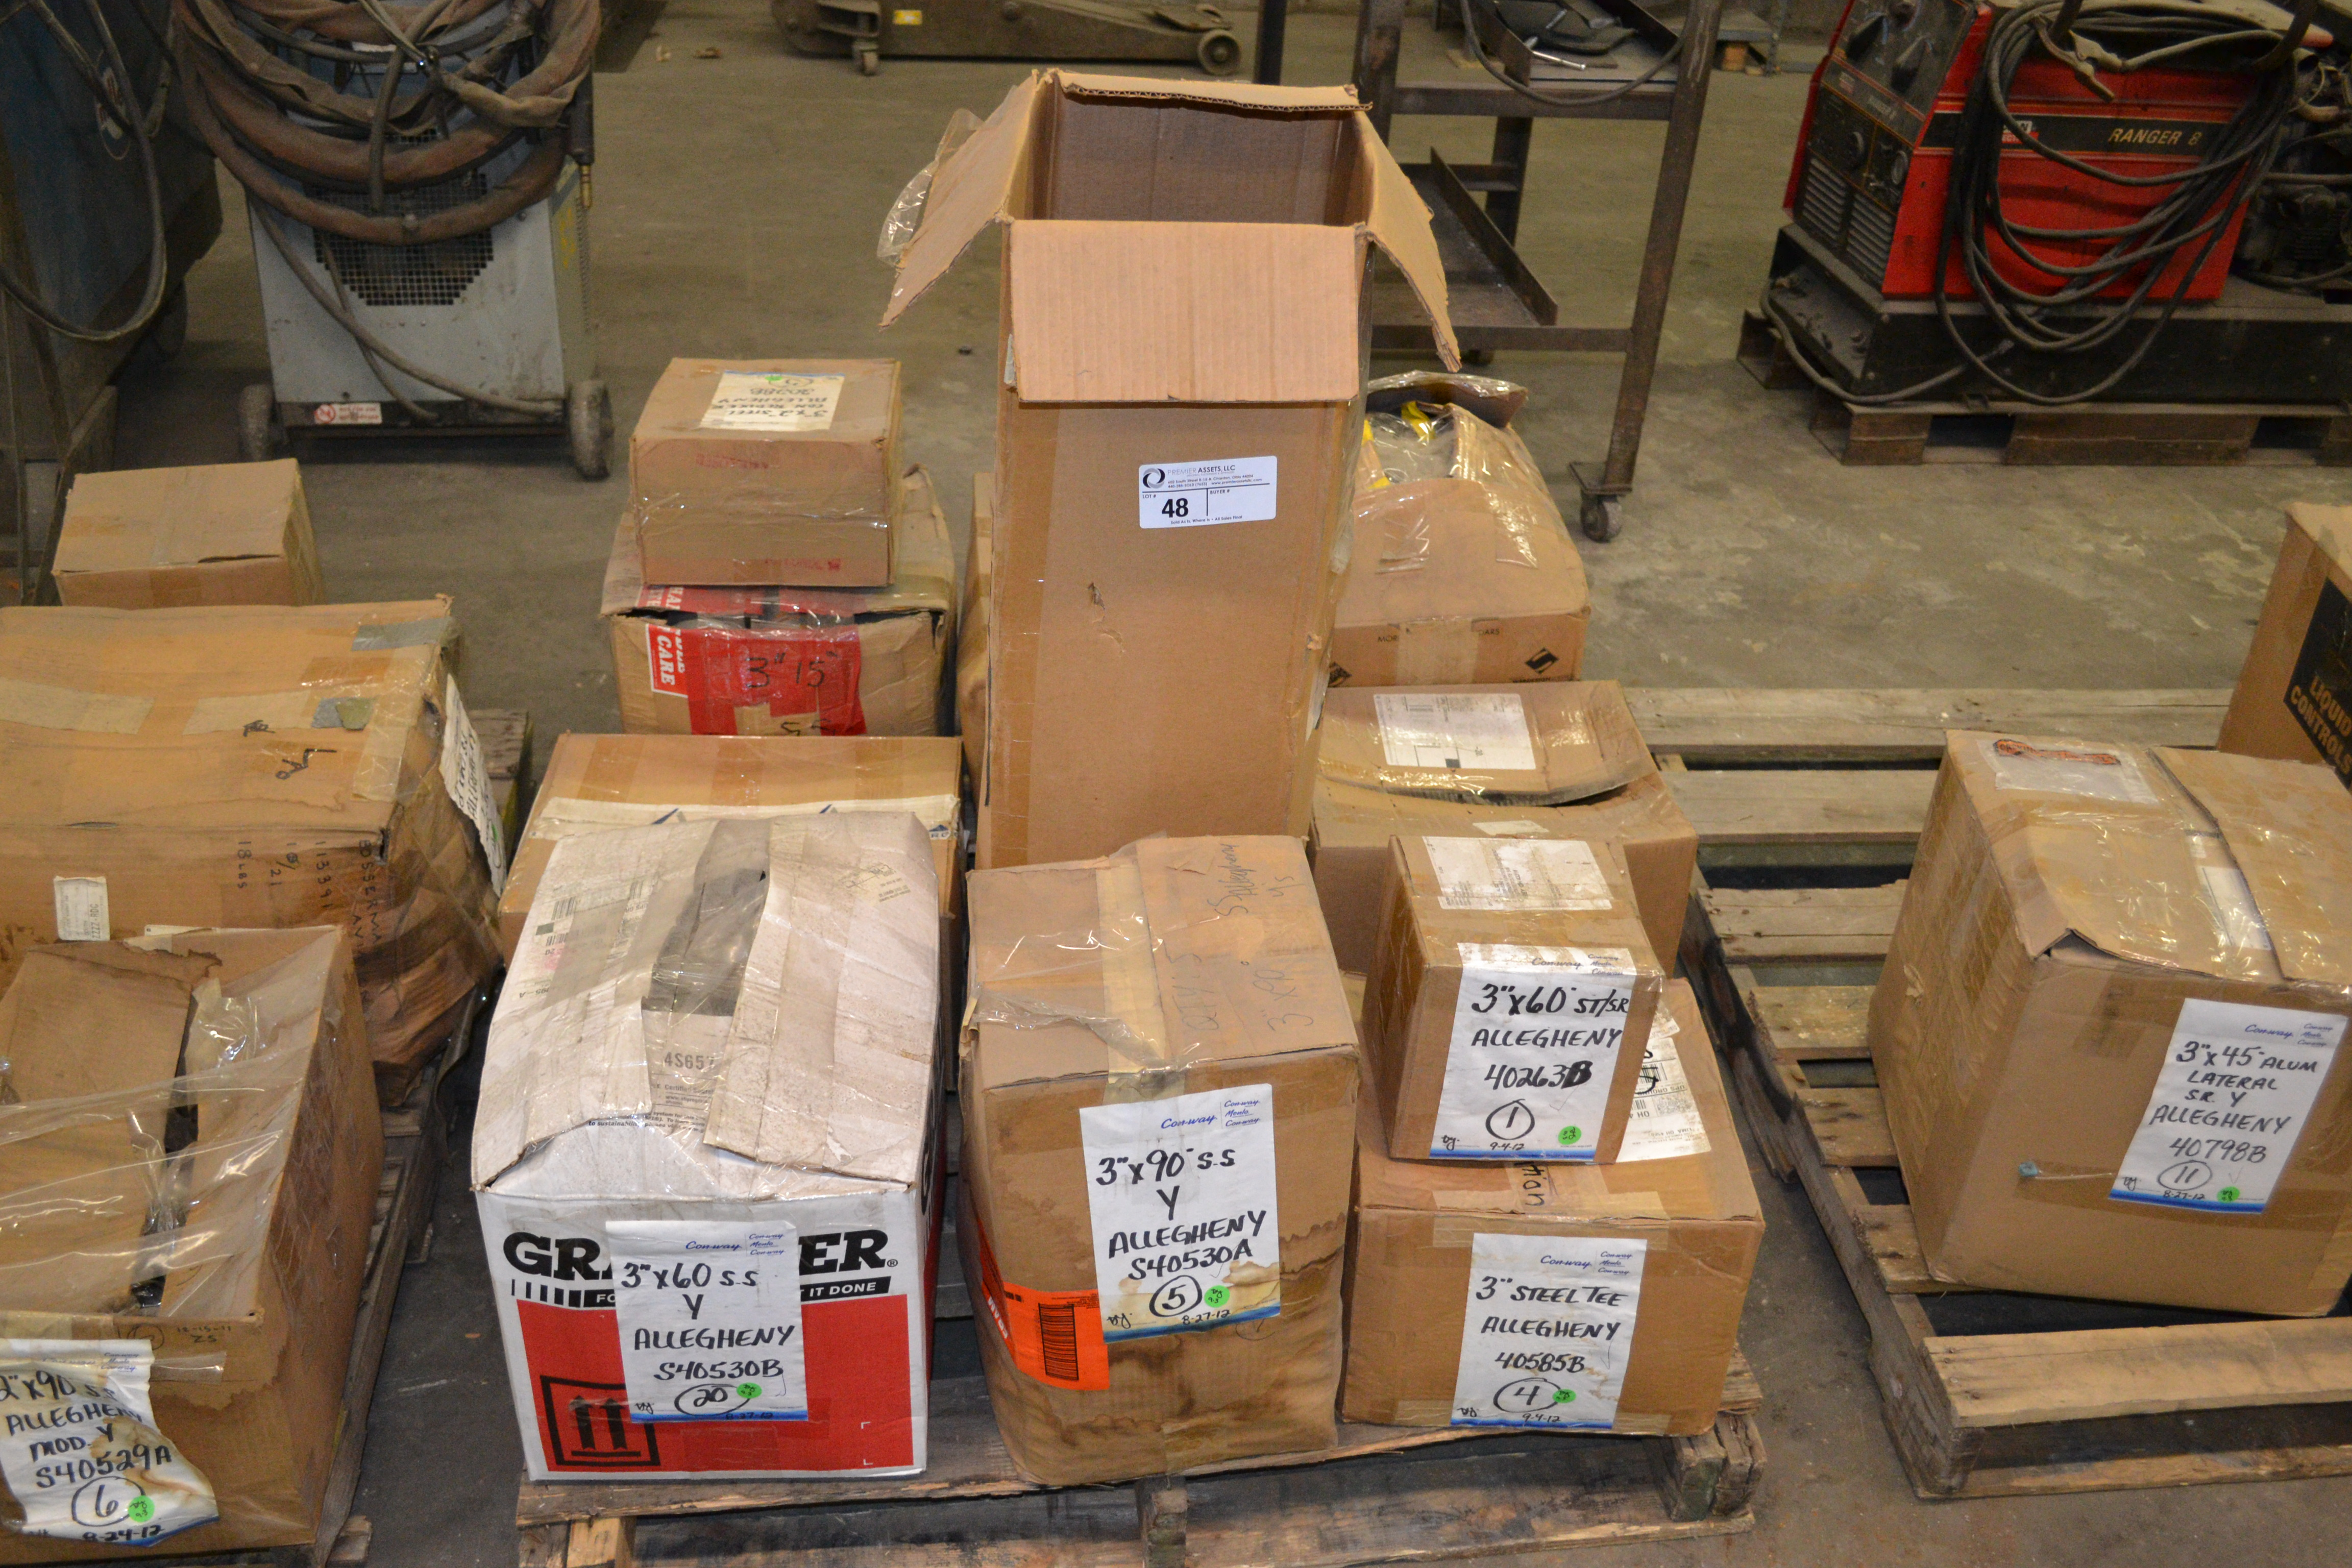 "Lot 48 - skid with boxes of Allegheny SS/SR & Steel 3"" fittings, degrees - 60, 90, Tees, Cross,15, 30 &"